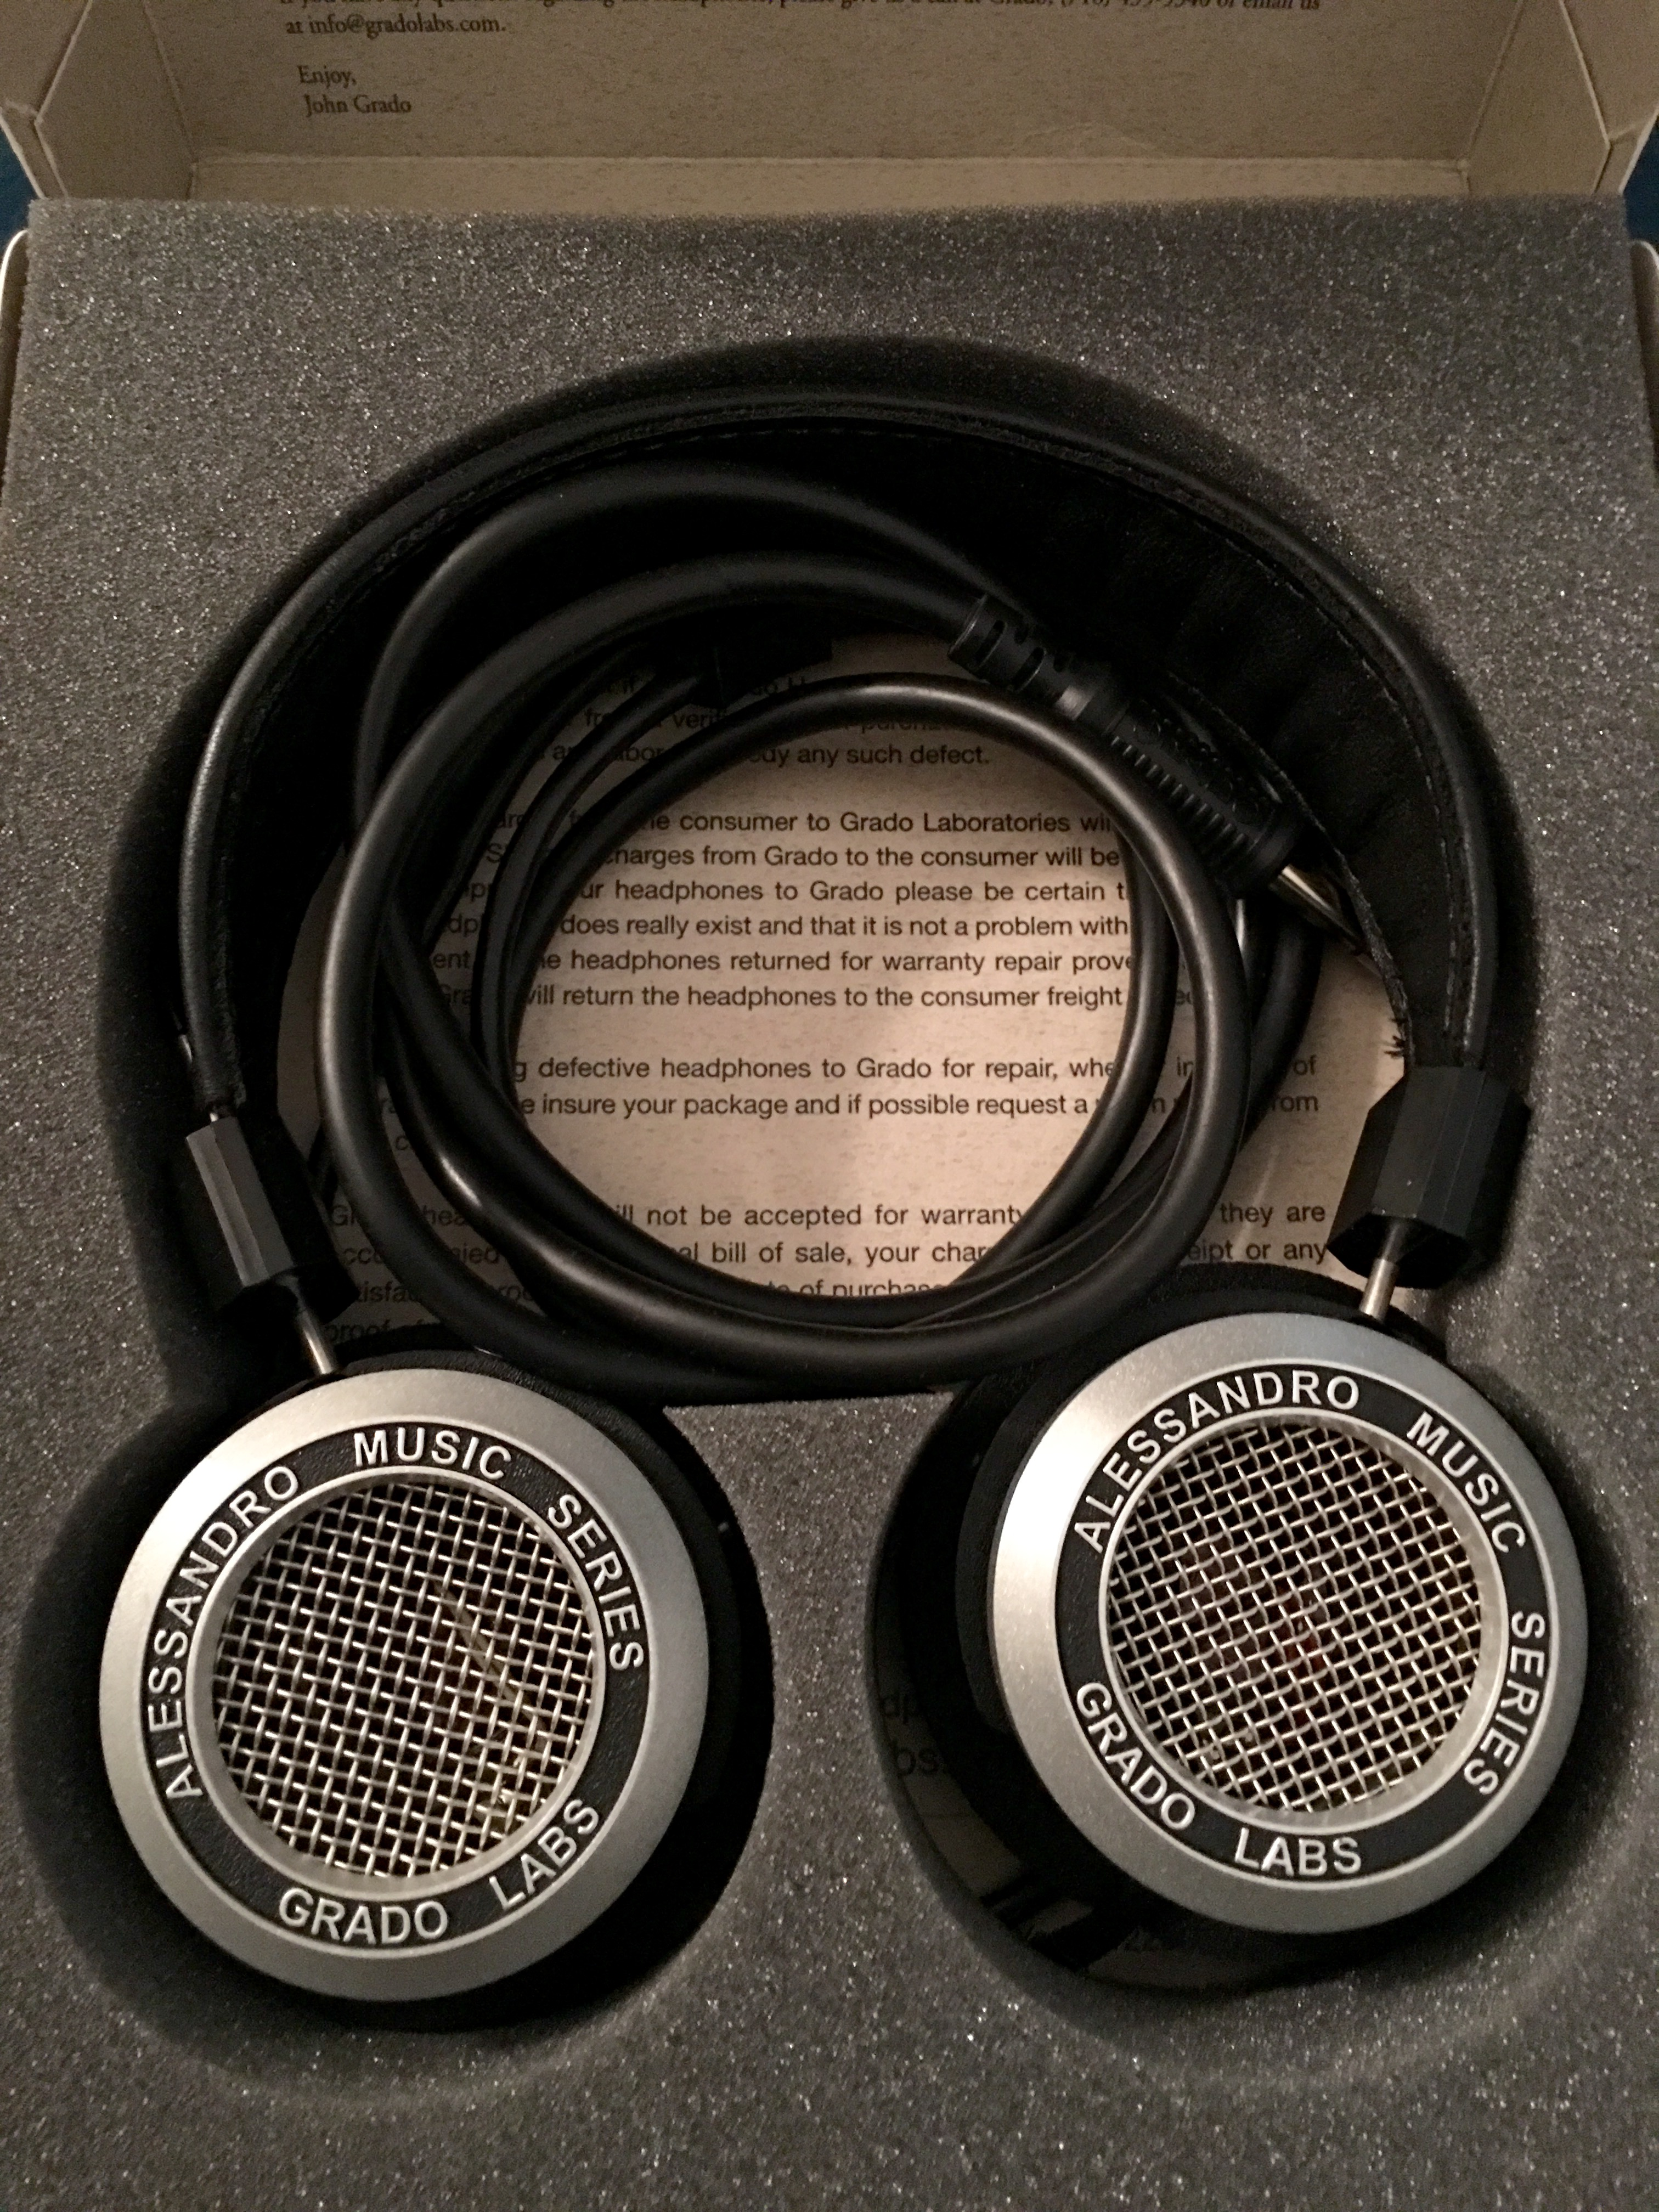 Grado Fan Club Page 2122 Headphone Reviews And Discussion Sr125 Wiring Diagram Alessandroms2i